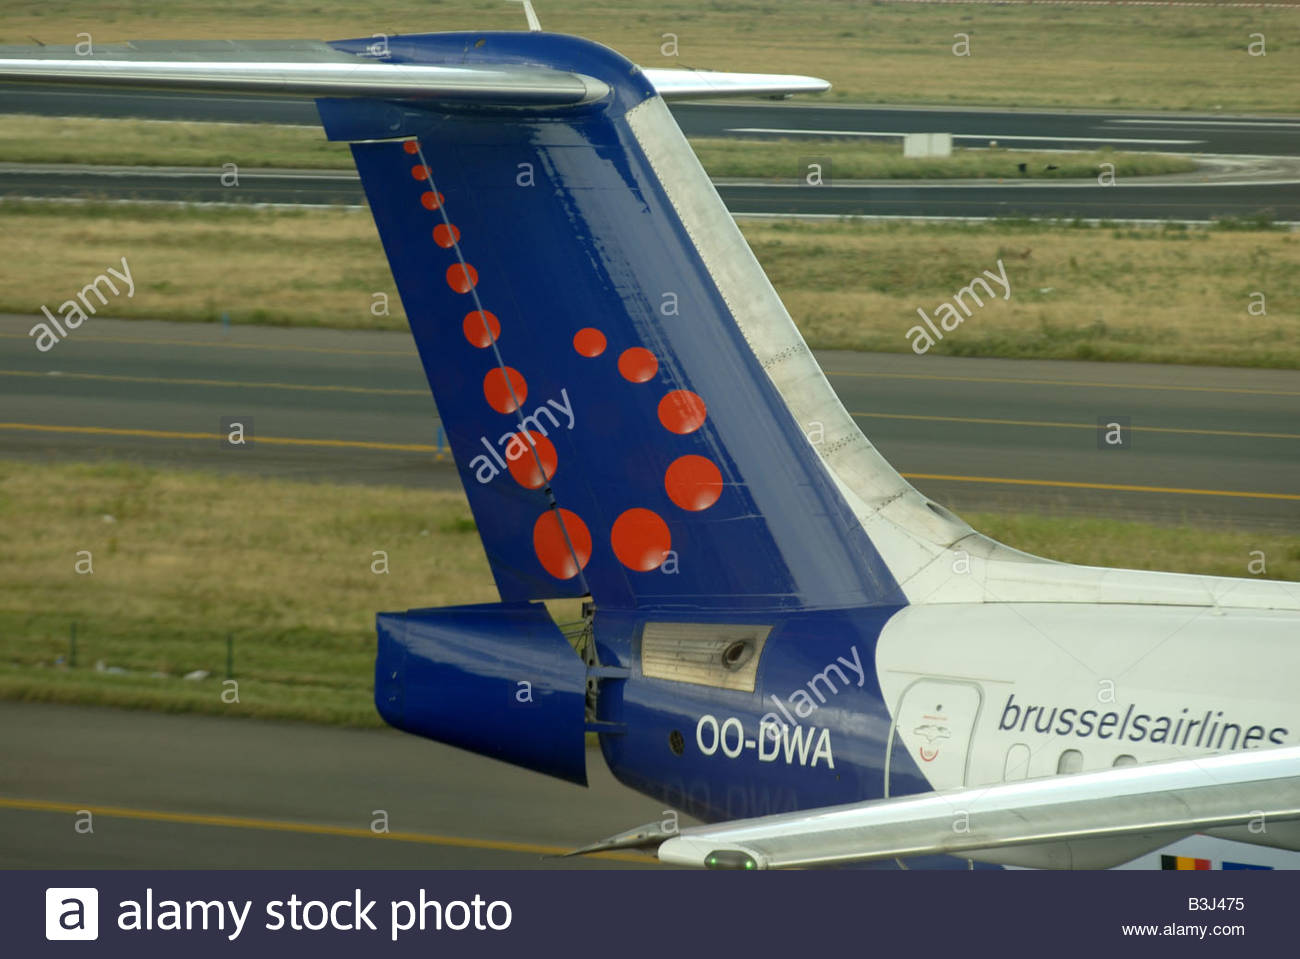 Brussels Airport Zaventem. Belgium. Brussels Airlines Bae 146 tail and insignia. - Stock Image